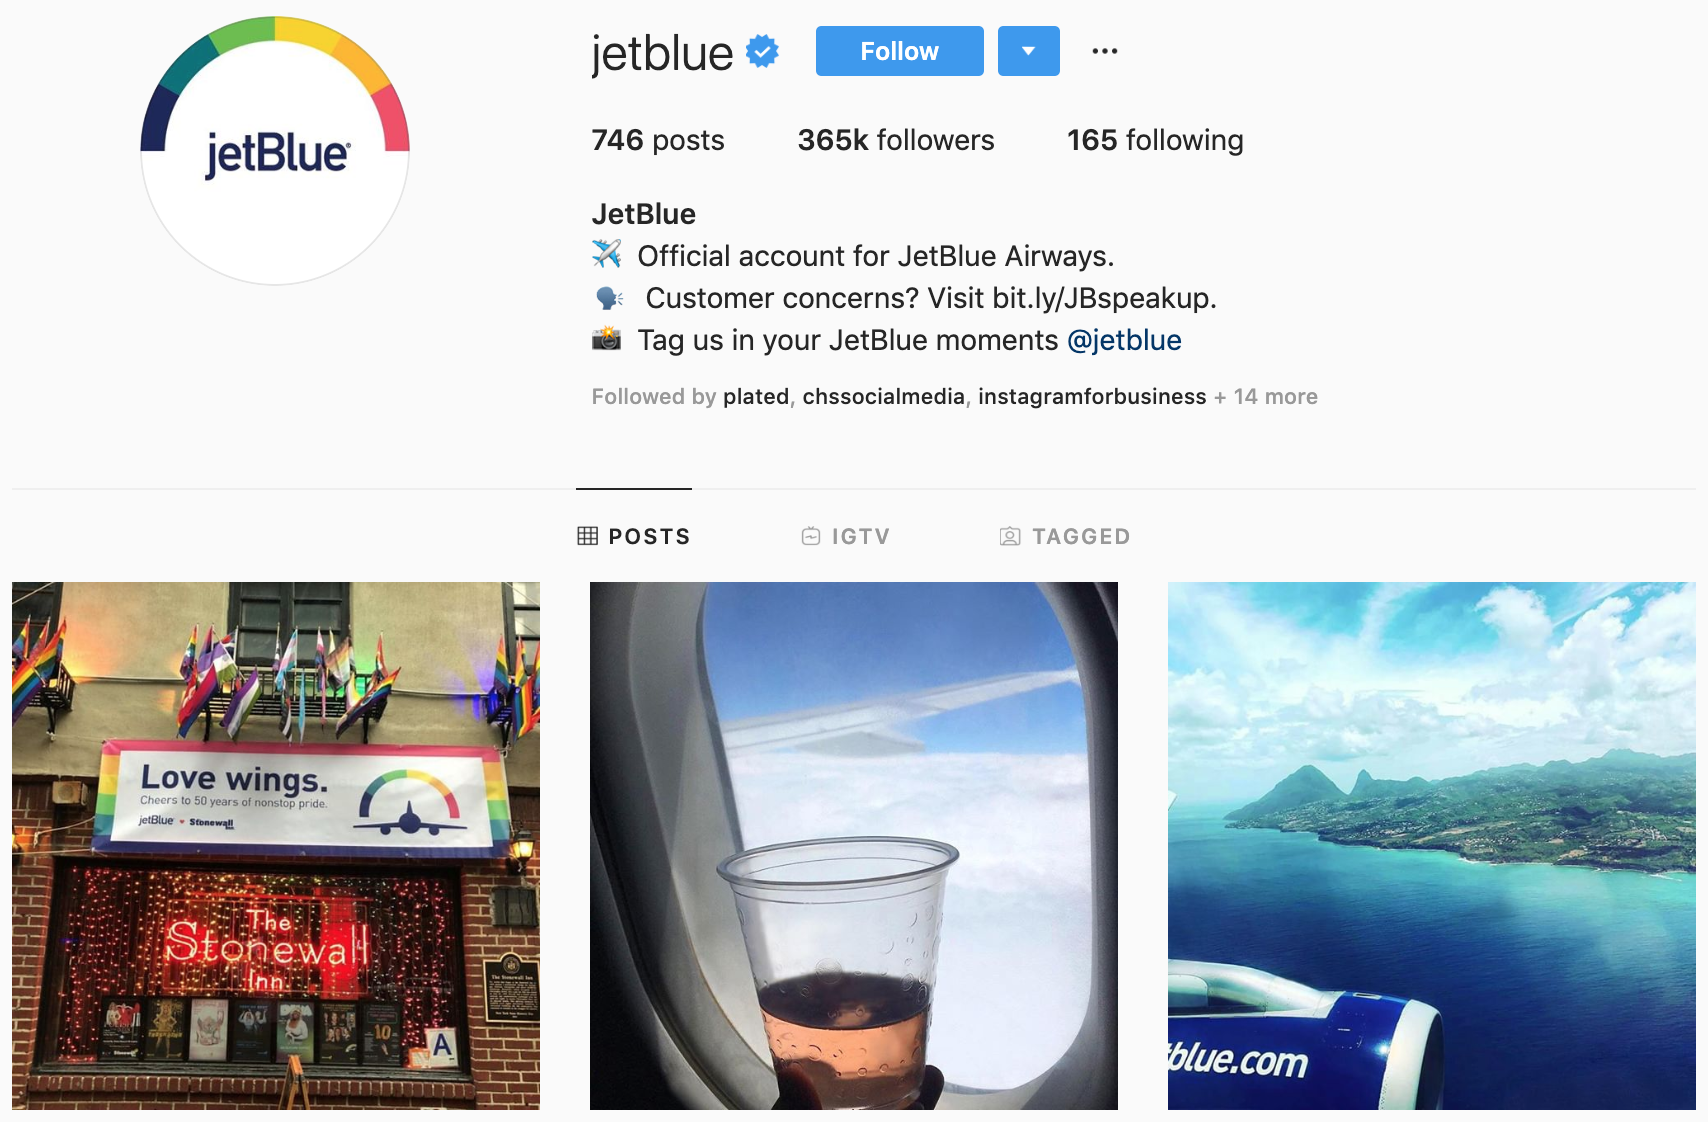 17464c4c1bc0 18 Instagram Accounts to Follow for Brand Inspiration | Sprout Social